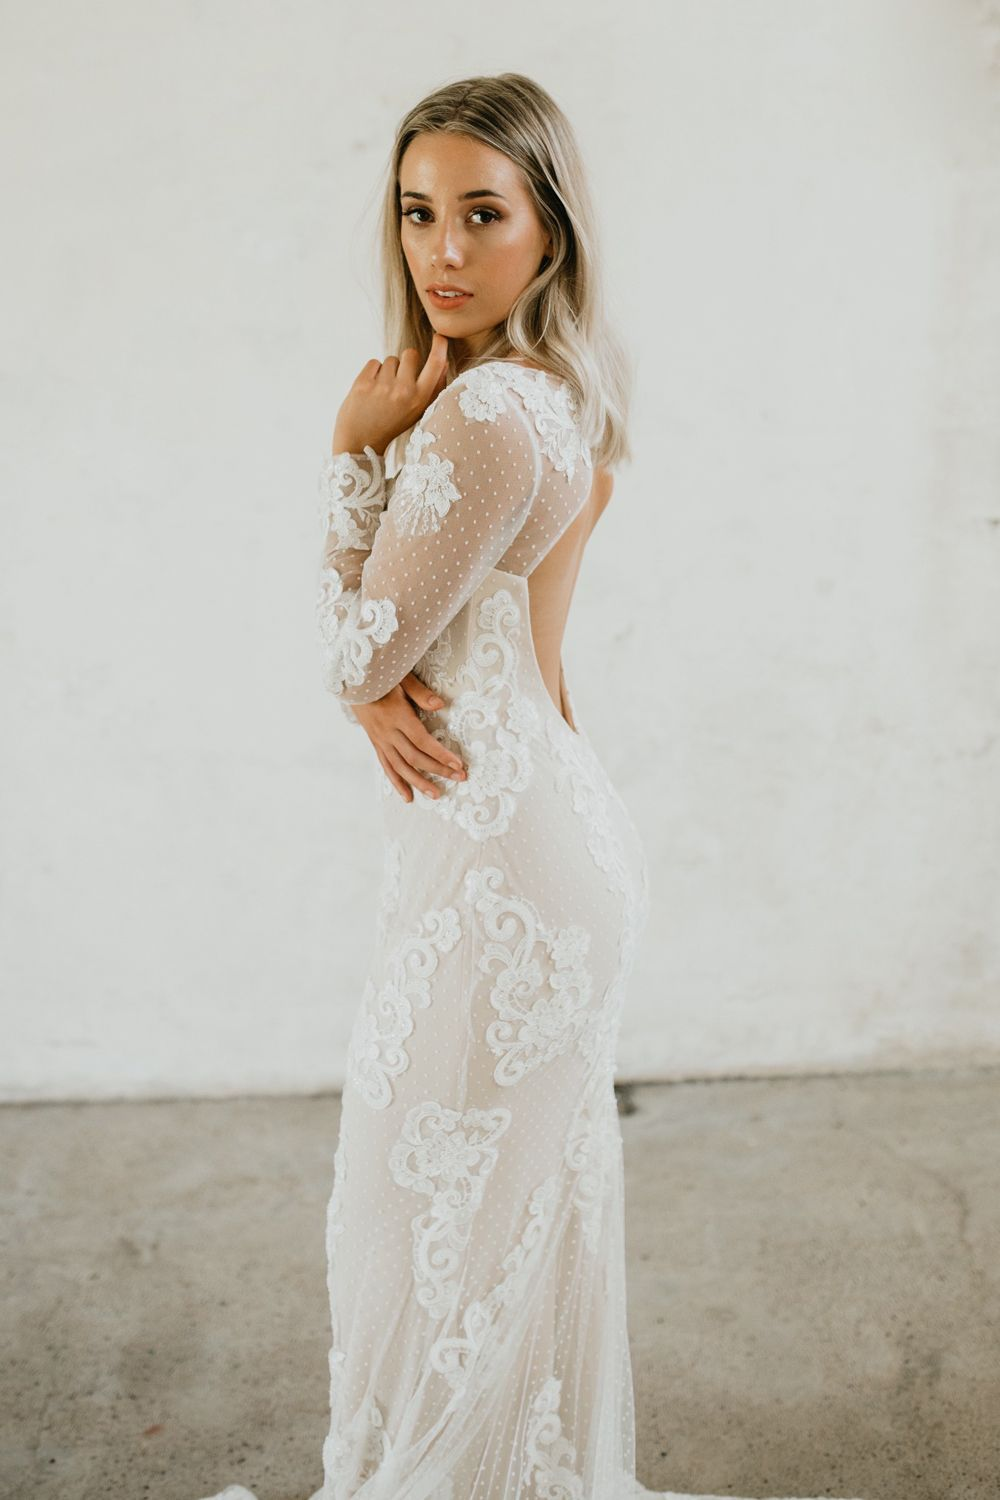 Lace keyhole back wedding dress  Florence Bridal Gown Exclusive Luxe Collection  CASAMENTO  WEDDING